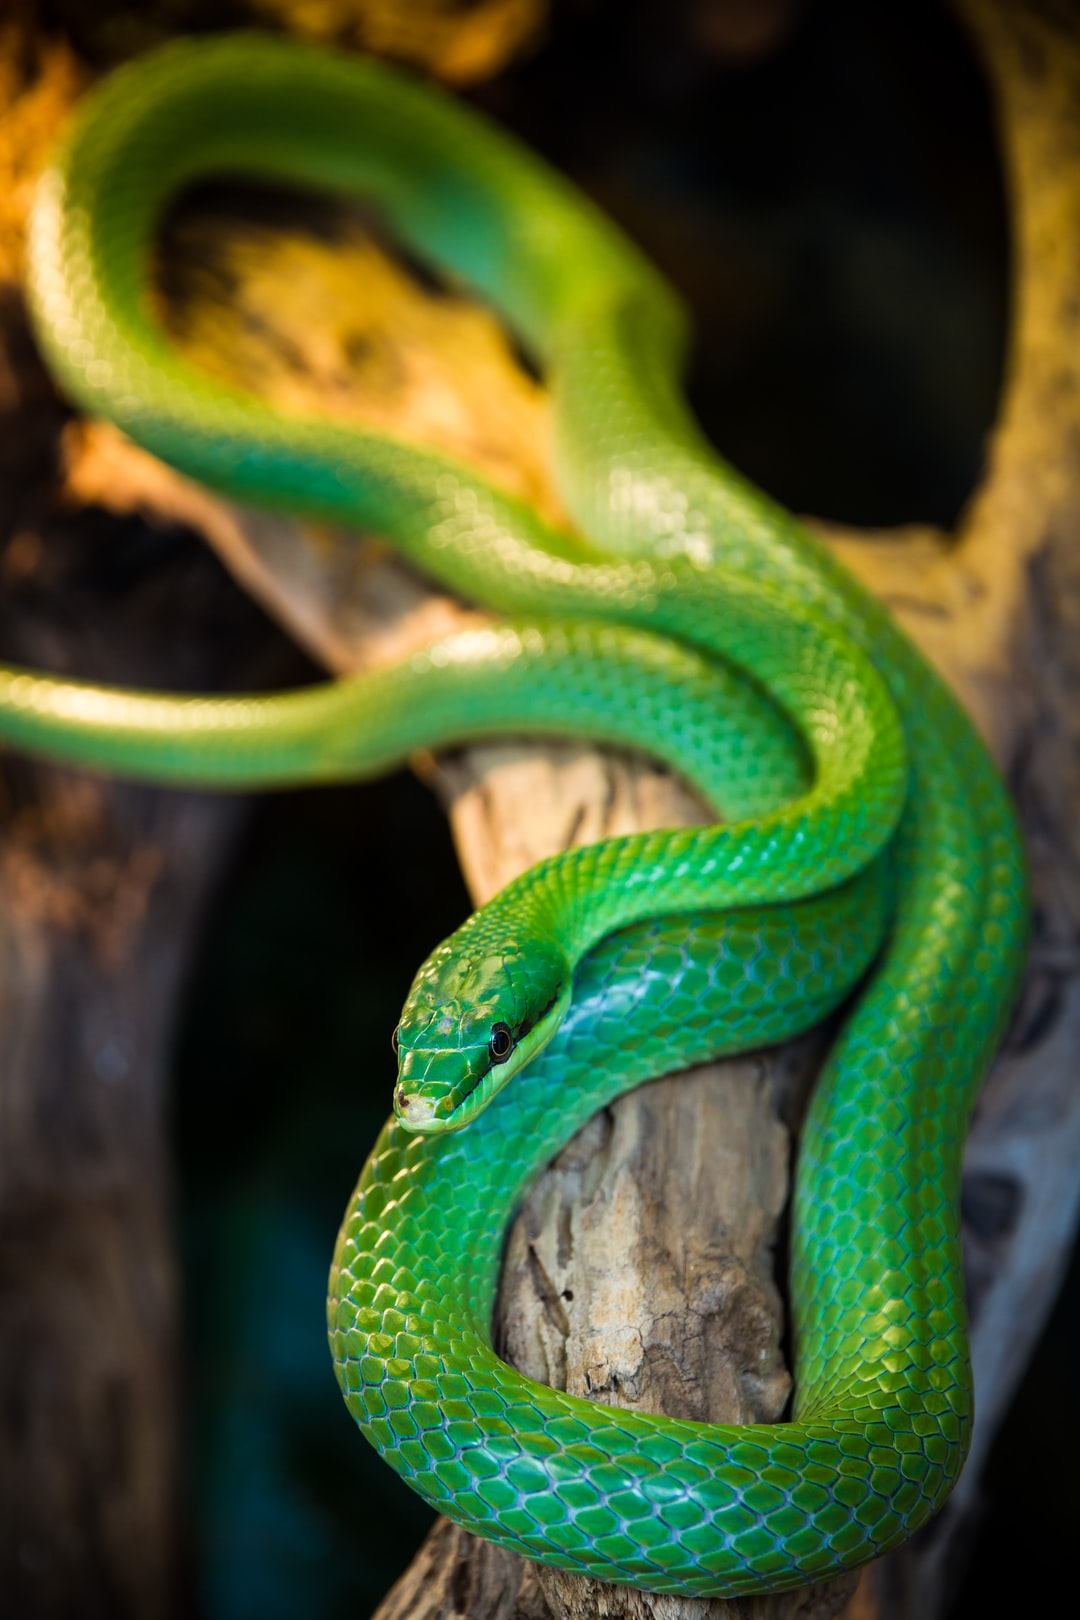 white and green snake movie download